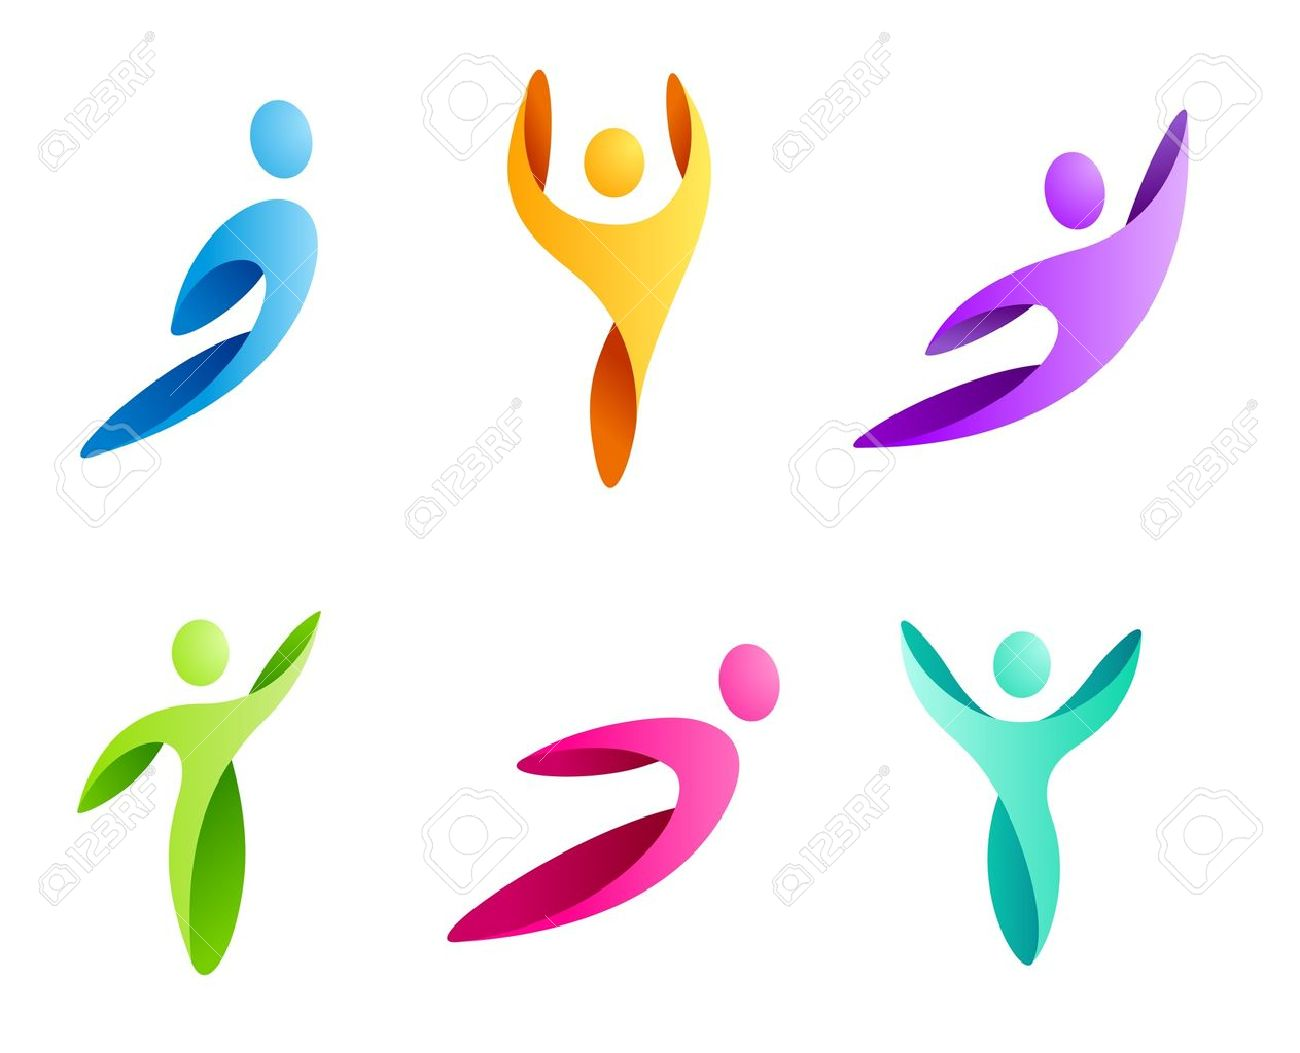 Logo Business Abstract. Sport man icon set. Flying, rushing activity. Vector. Stock Vector - 14095827